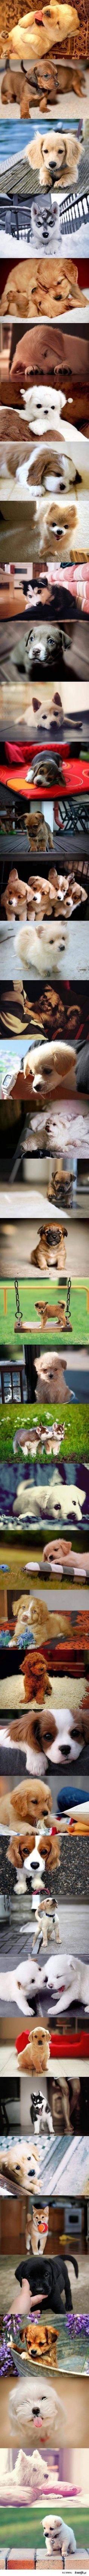 PUPPIES!!!! I want one!